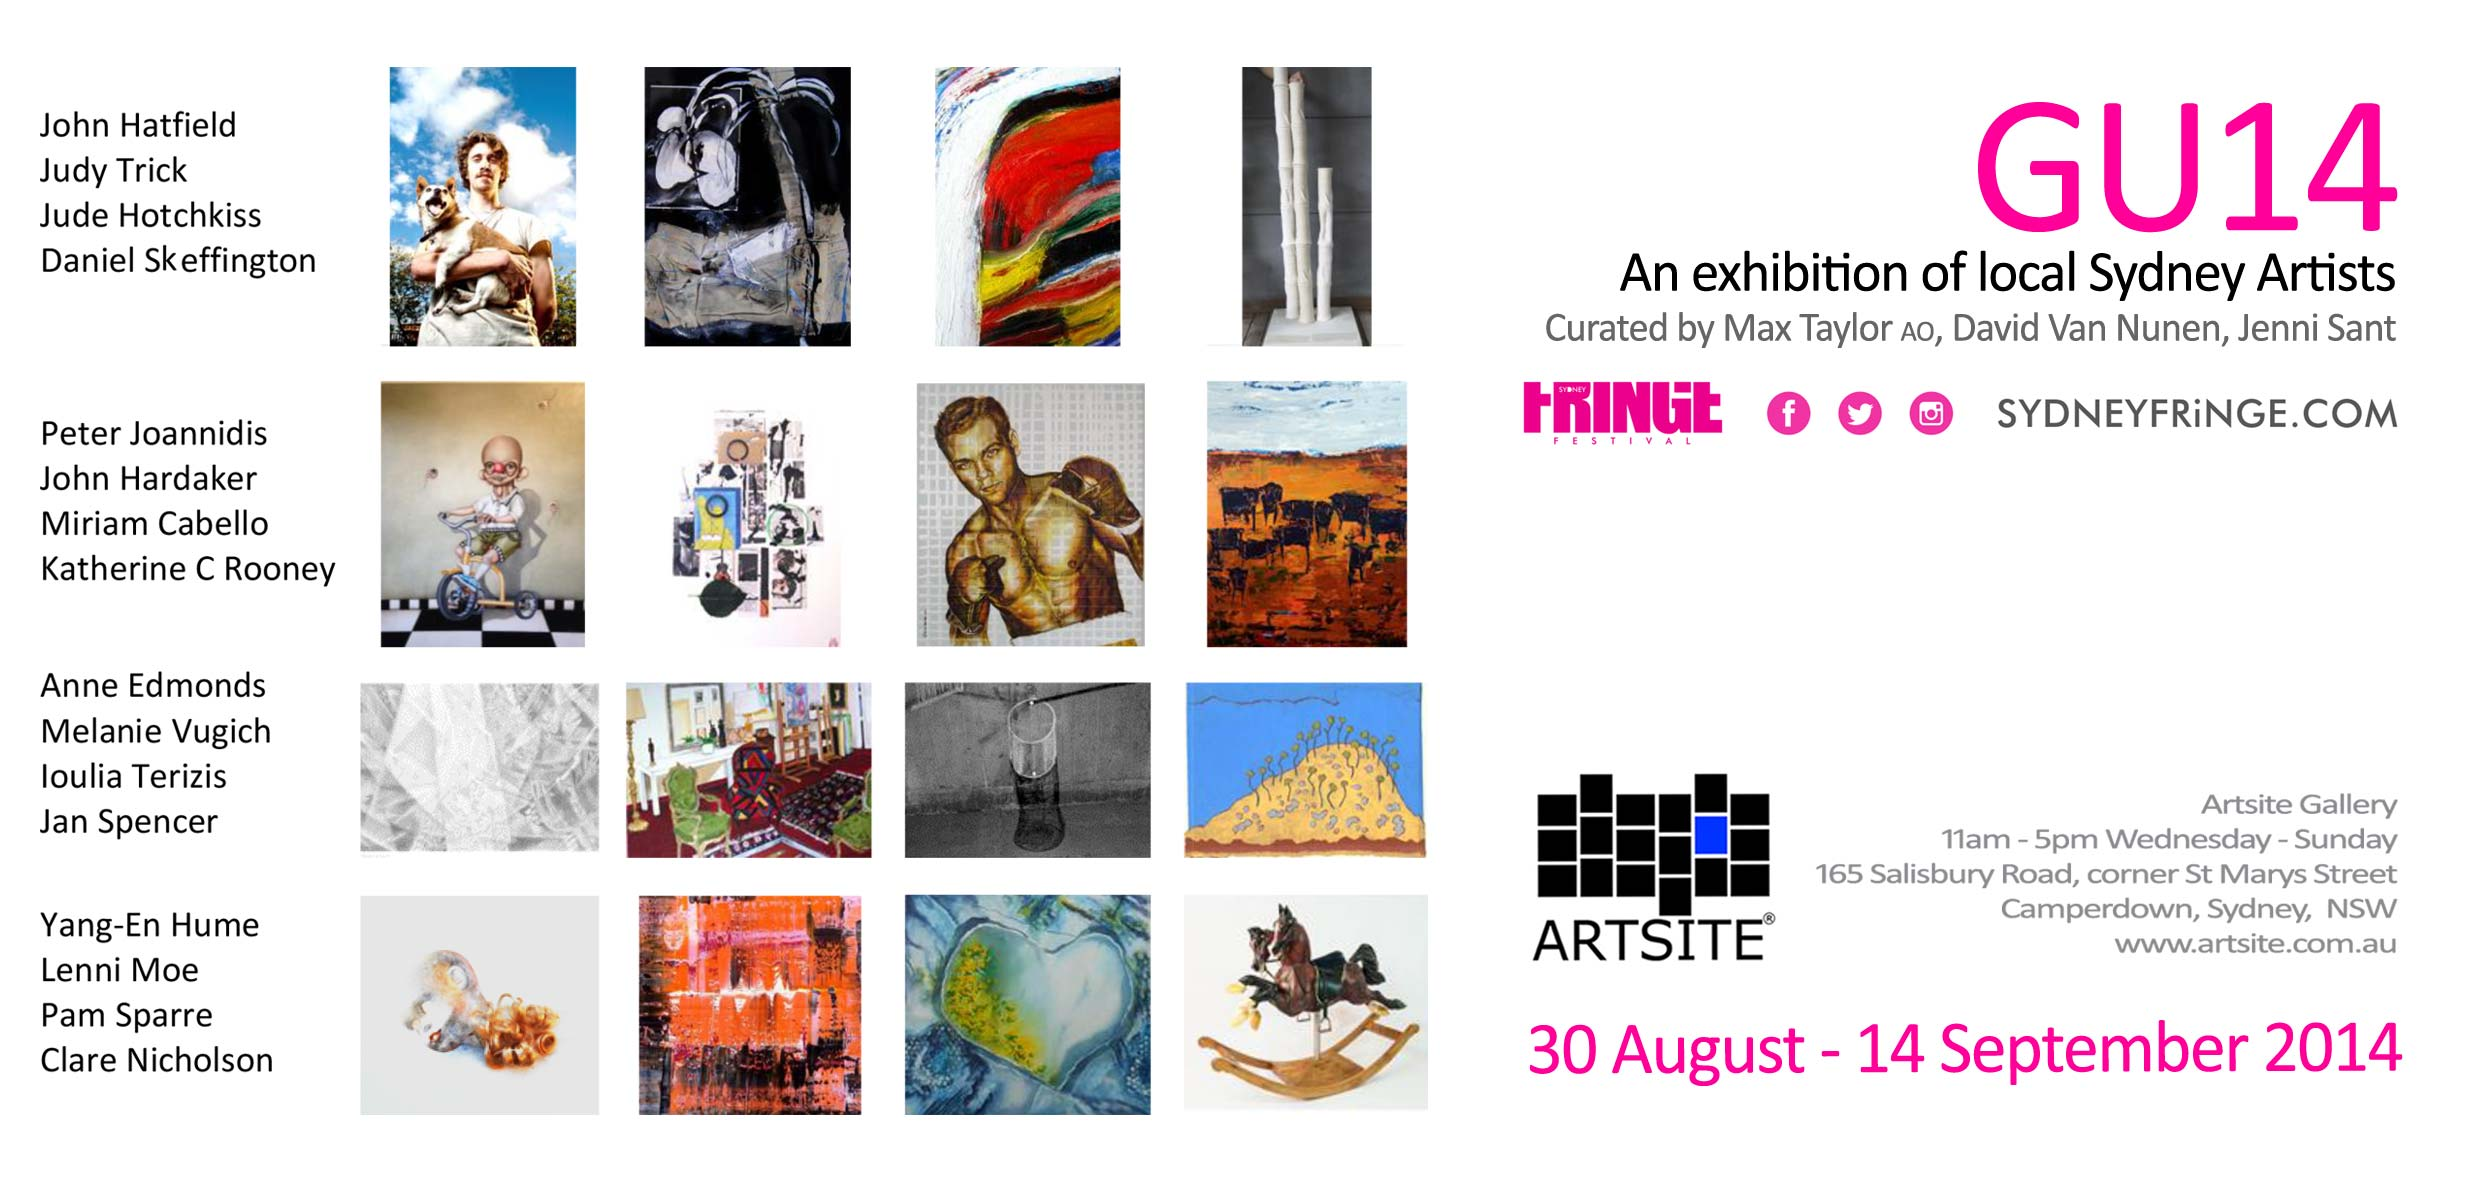 View Exhibition at Artsite Gallery, Sydney. 30 August - 14 September 2014: GU14 - New Artists Exhibition - The Sydney Fringe Festival 2014